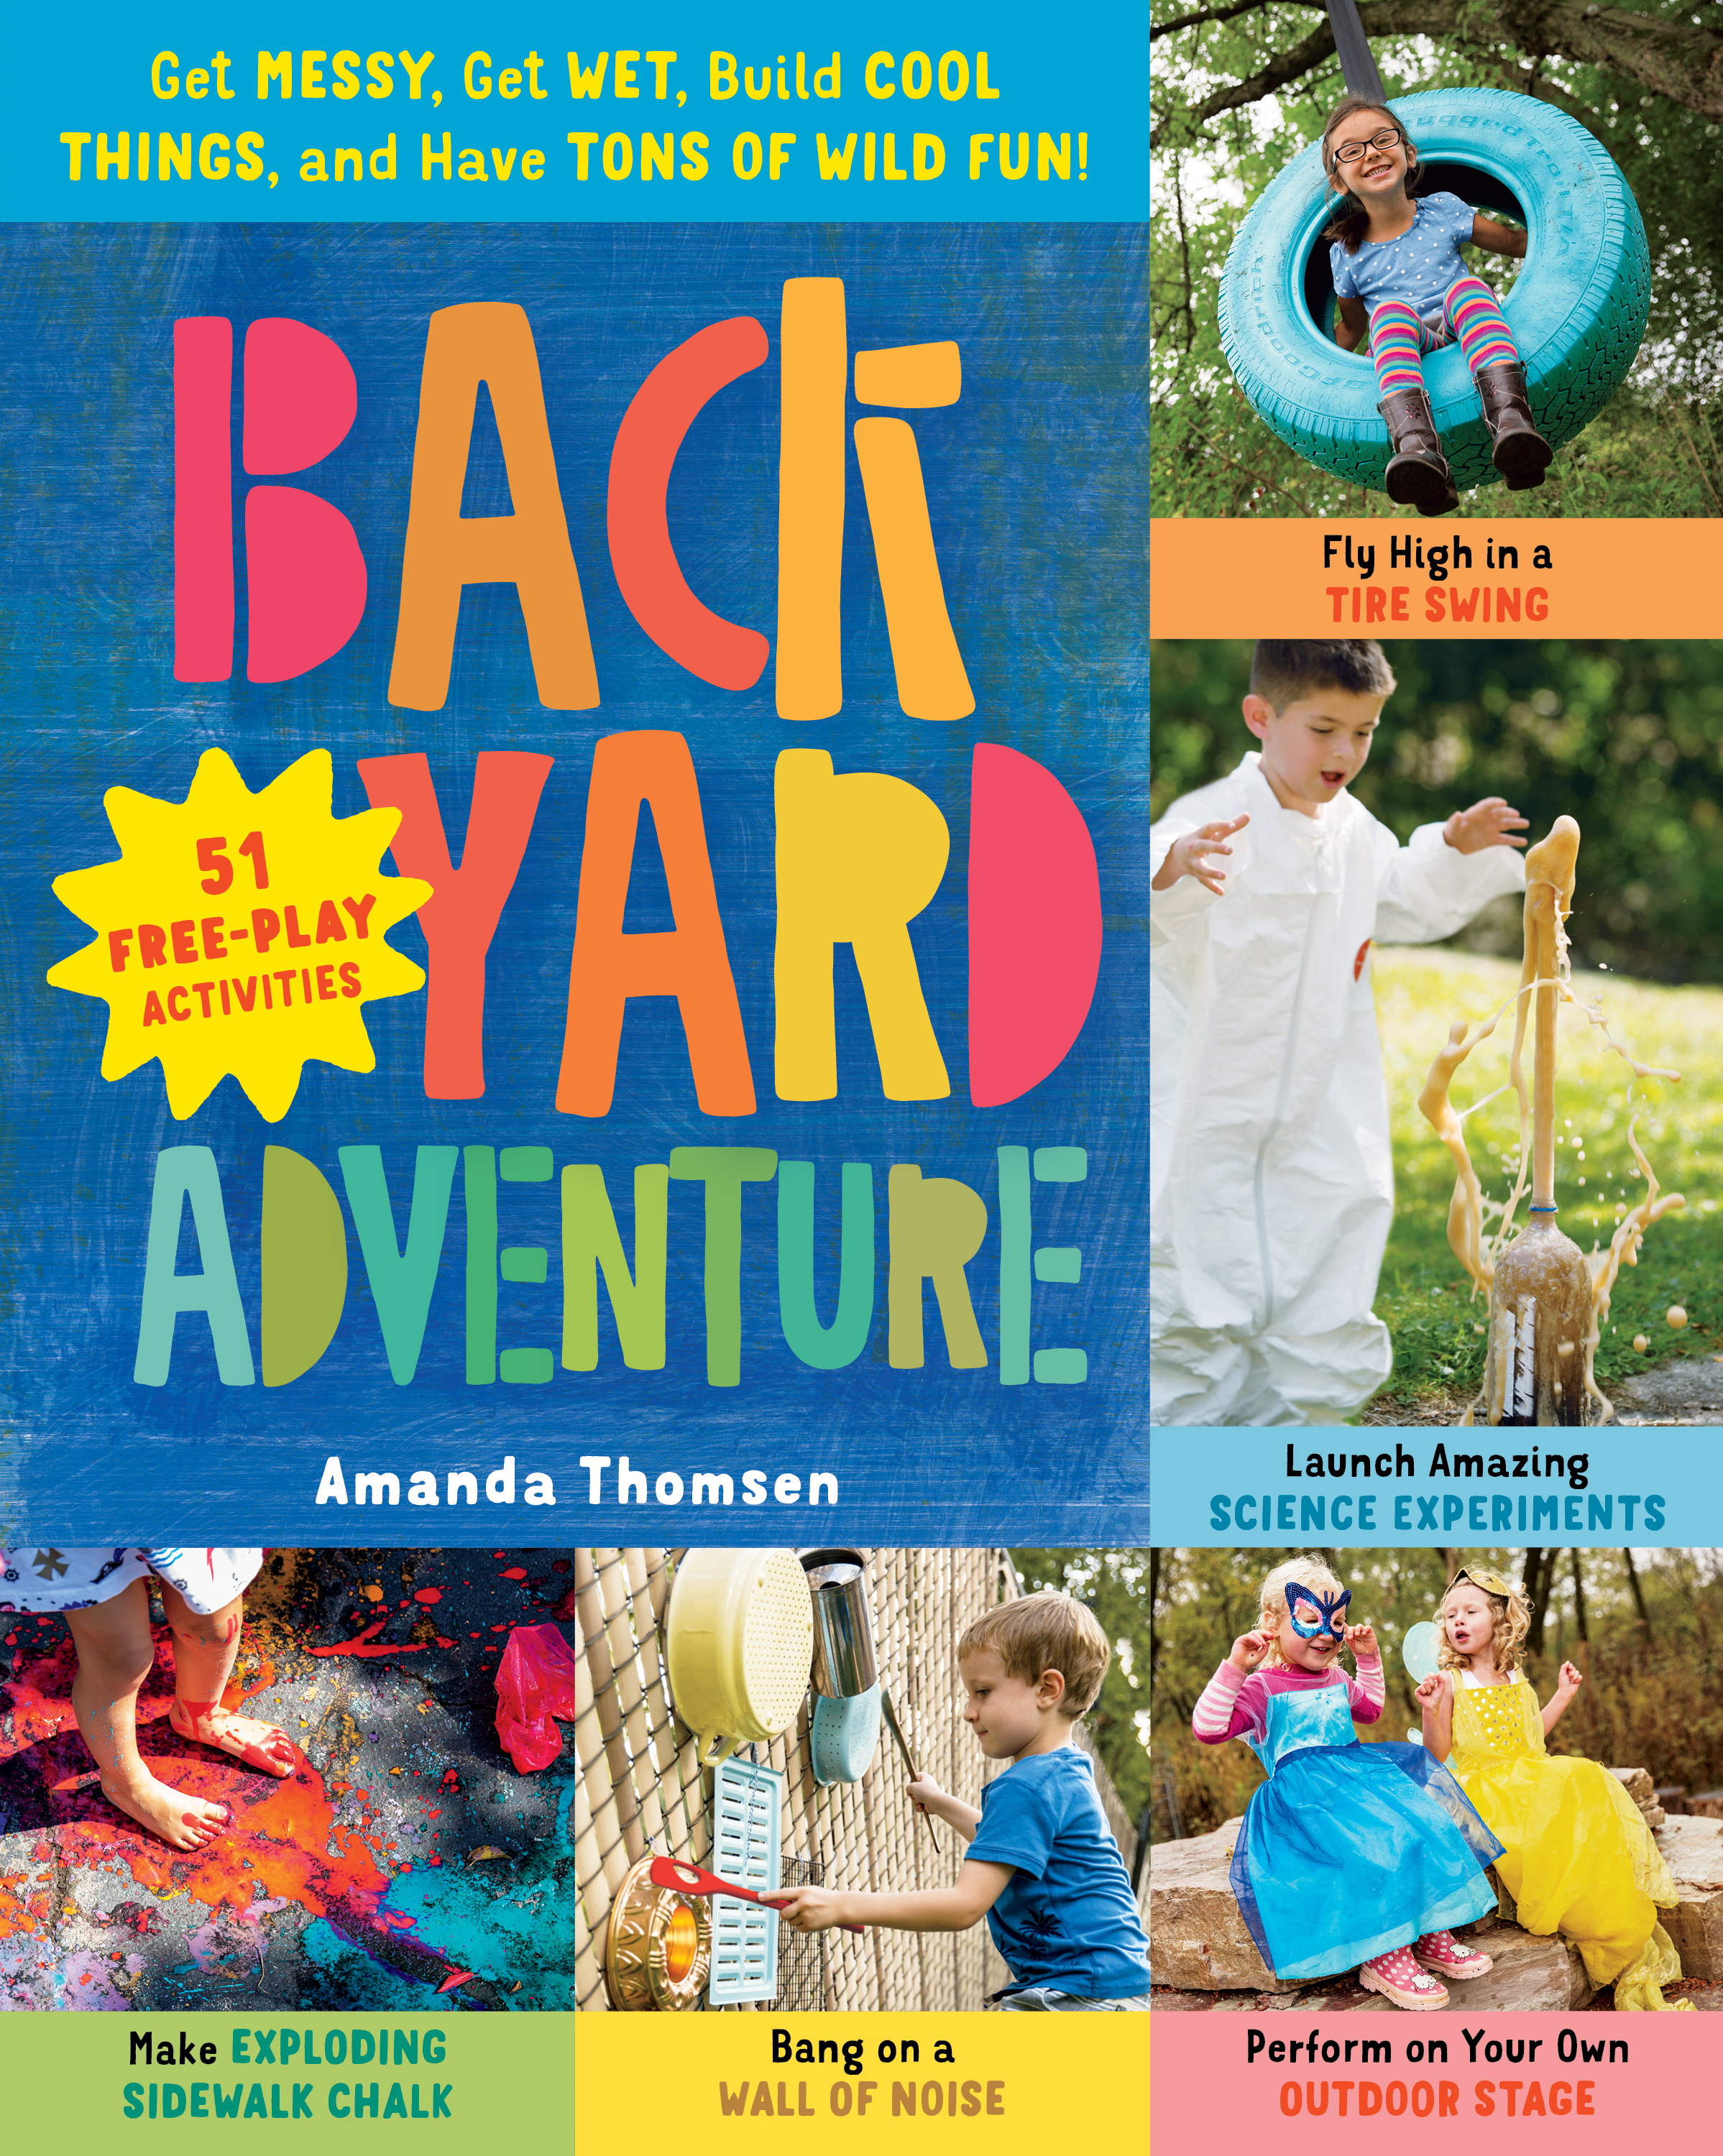 Backyard Adventure Get Messy, Get Wet, Build Cool Things, and Have Tons of Wild Fun! 51 Free-Play Activities - Amanda Thomsen